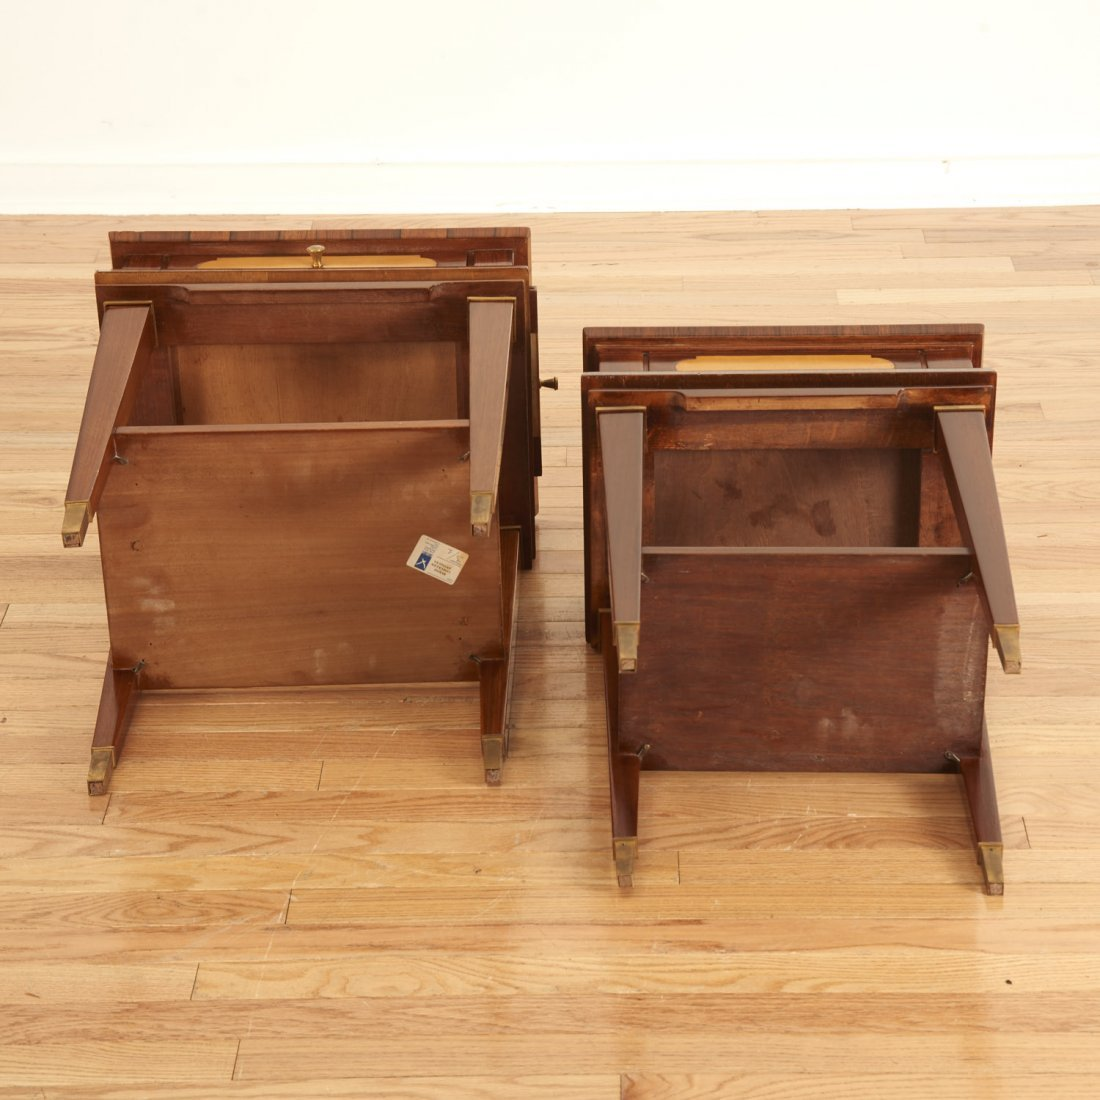 Manner Maxime Old near pair side tables - 9